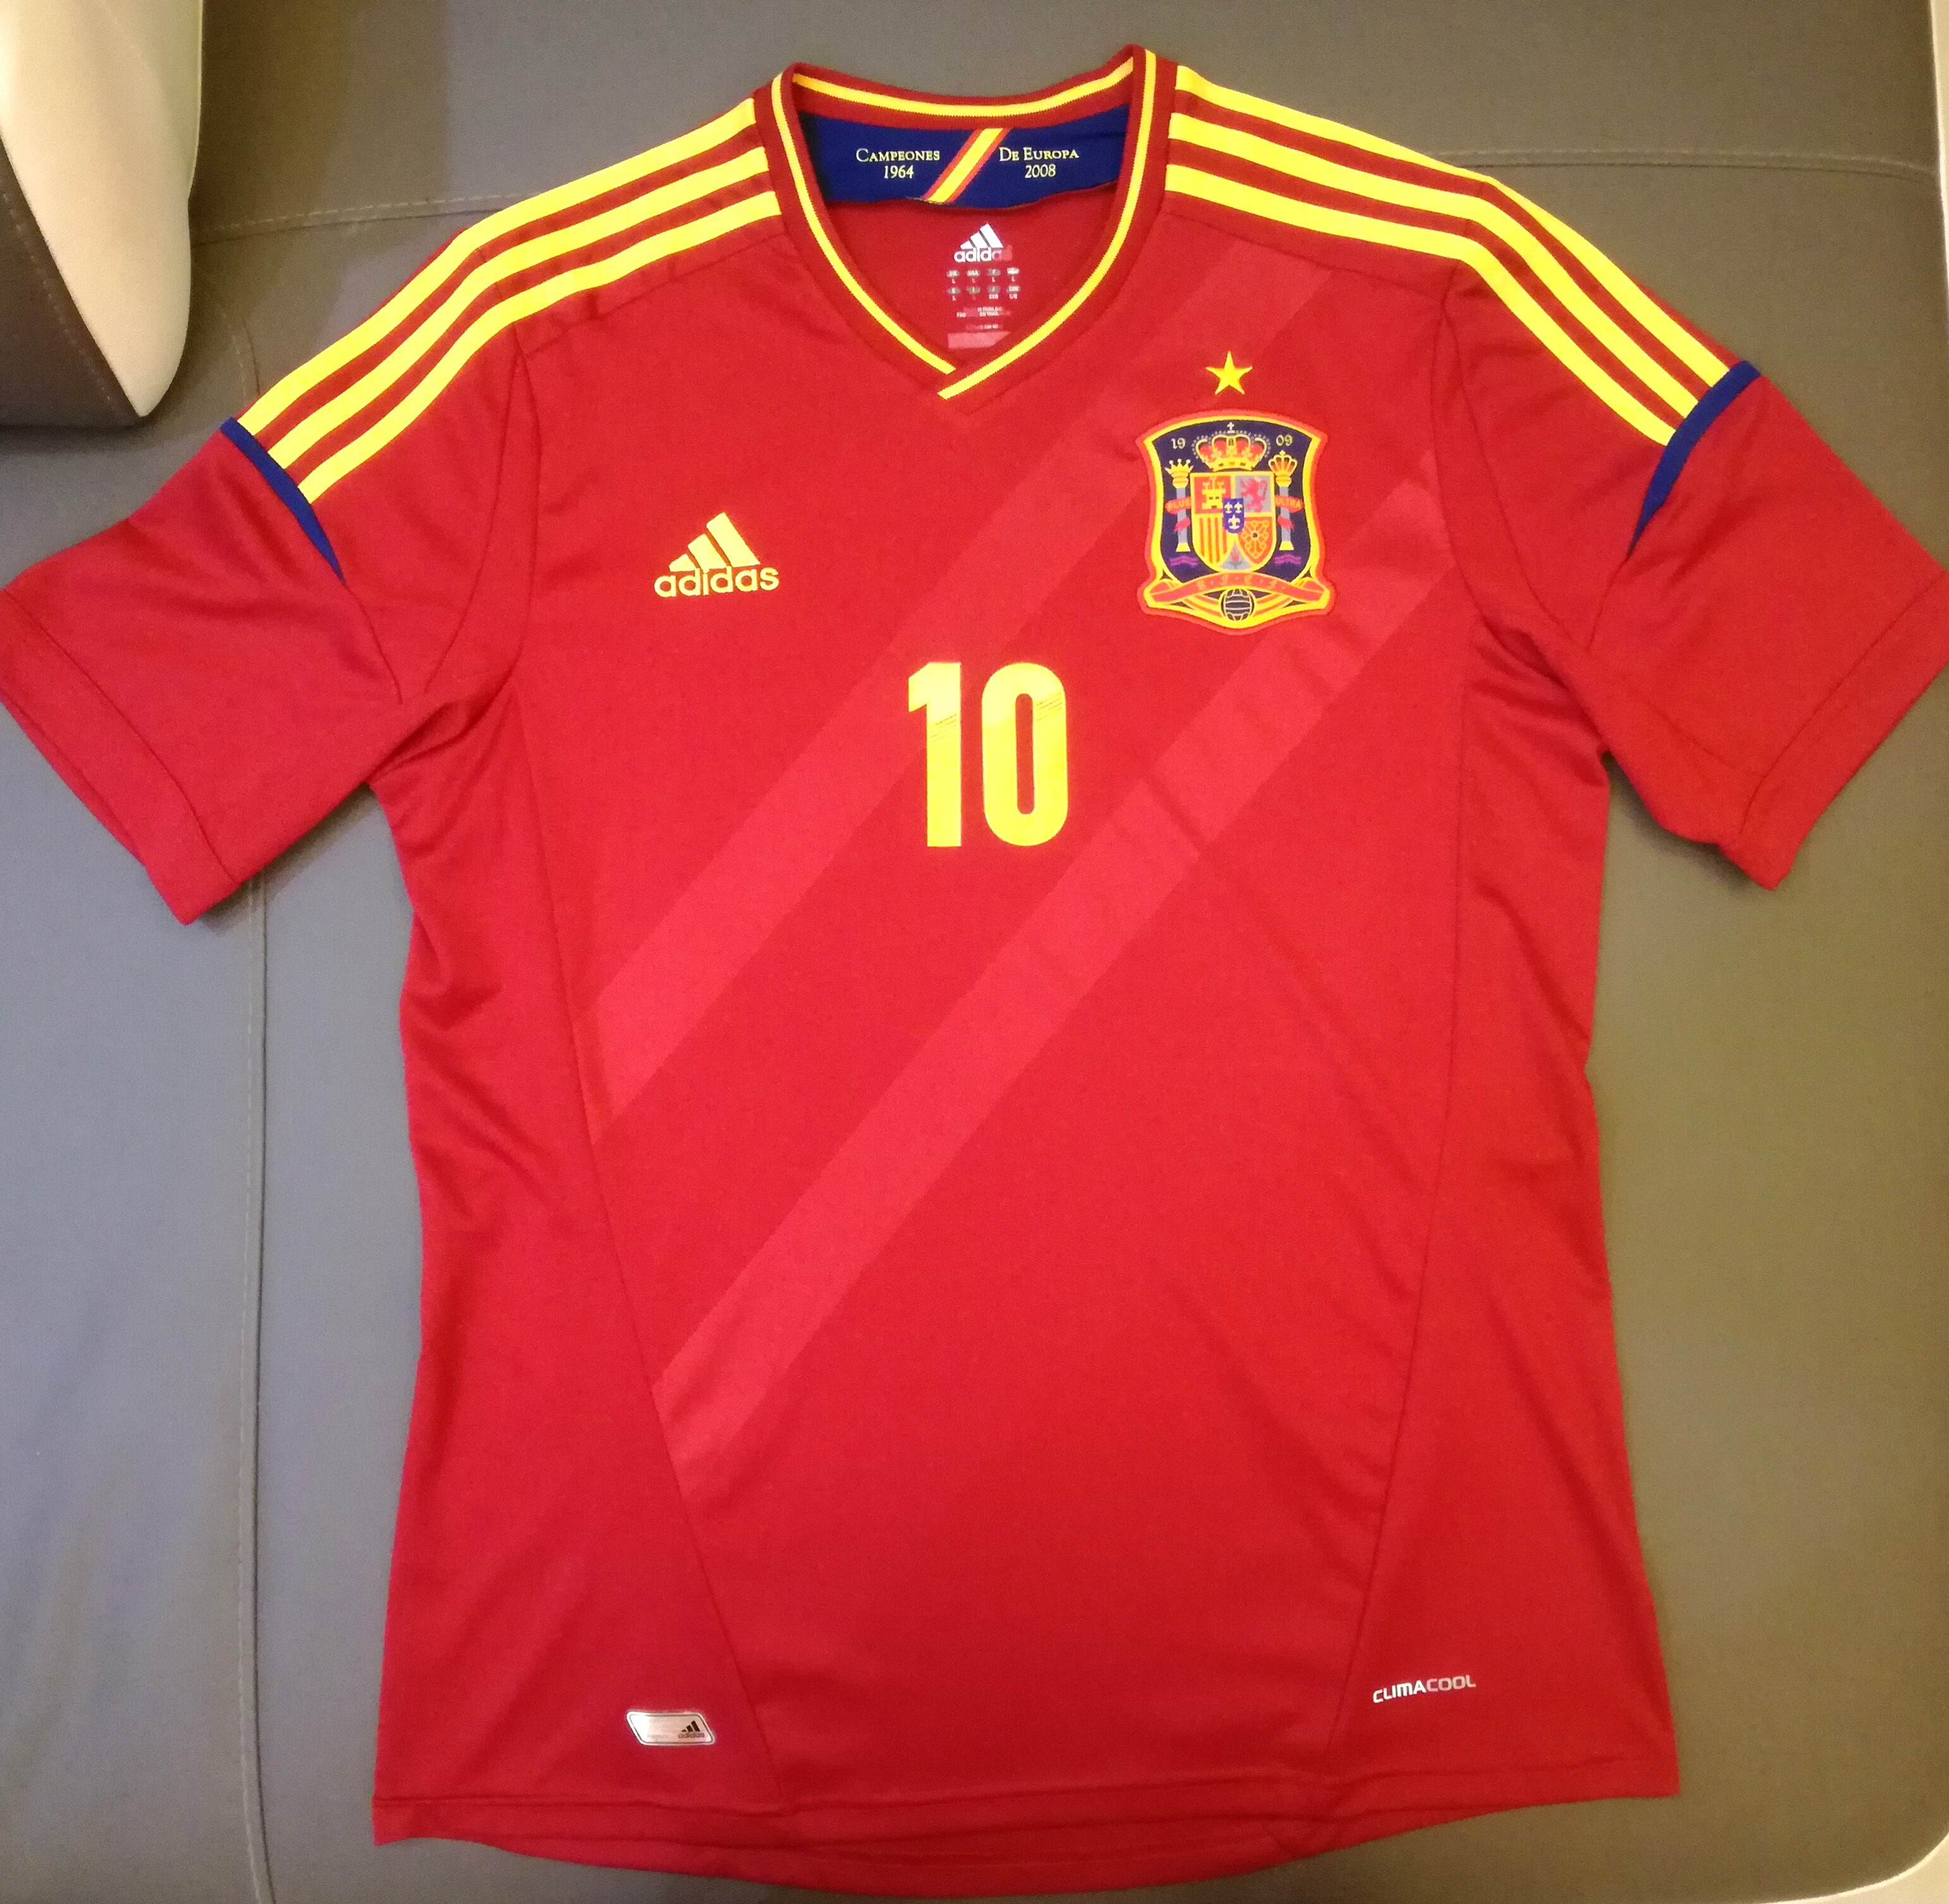 bcebbb174f8 Original Adidas Spain Home Jersey 11 13 with No.10 Fabregas